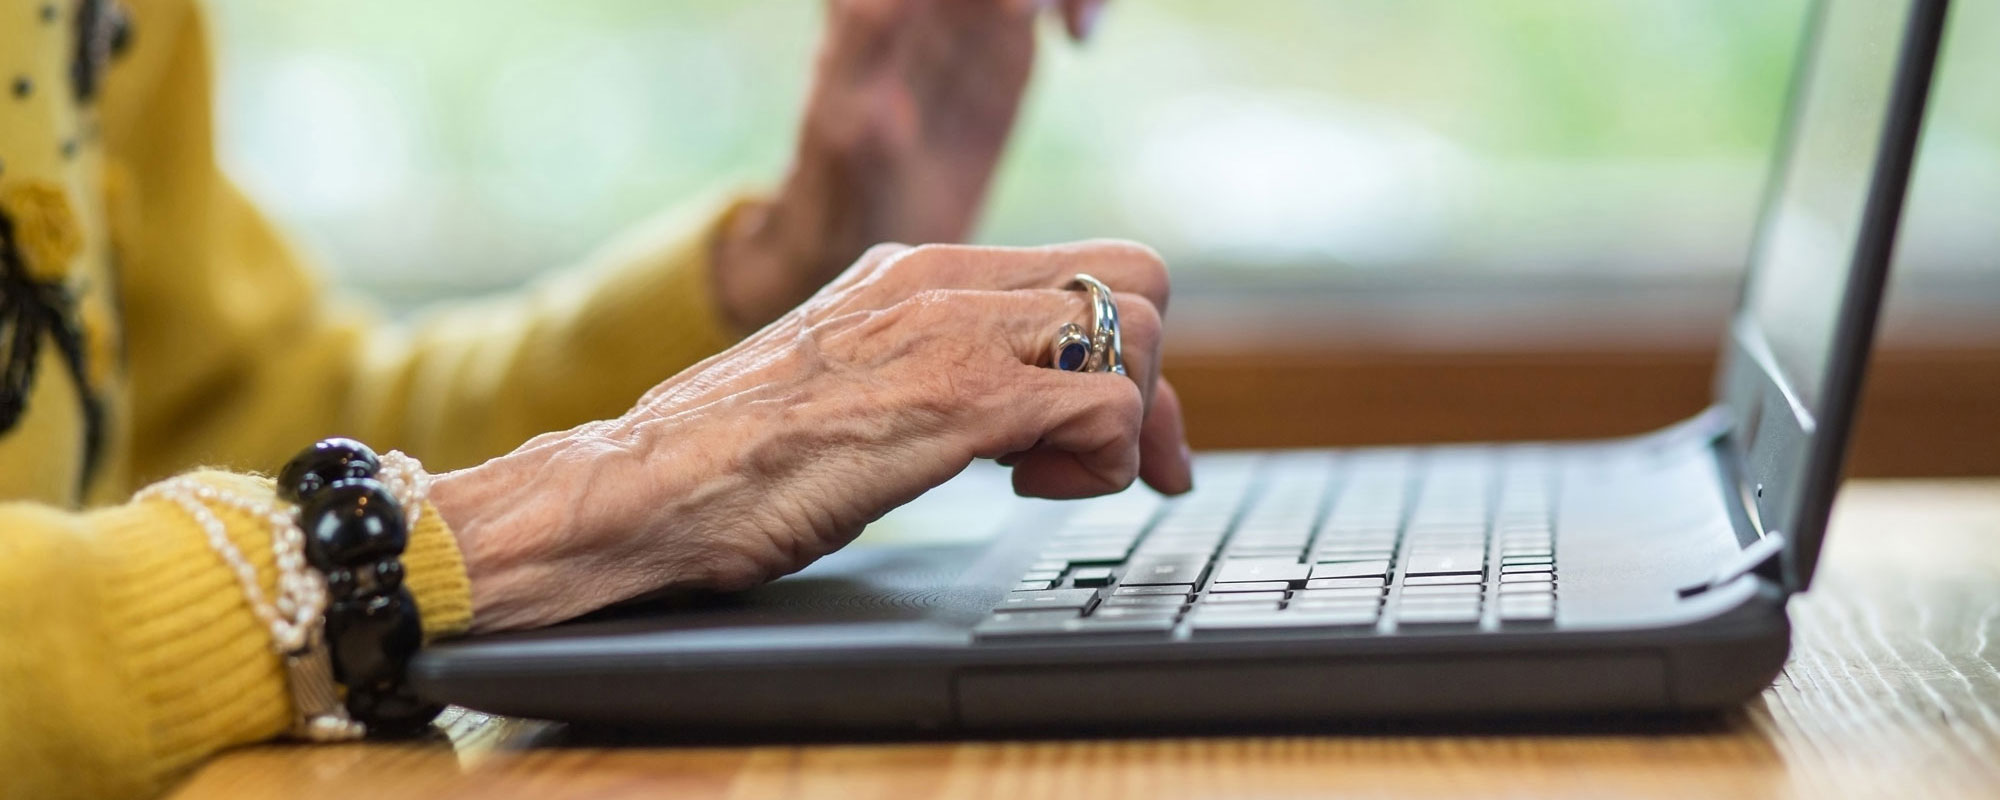 close up of older woman's hands typing on a laptop computer